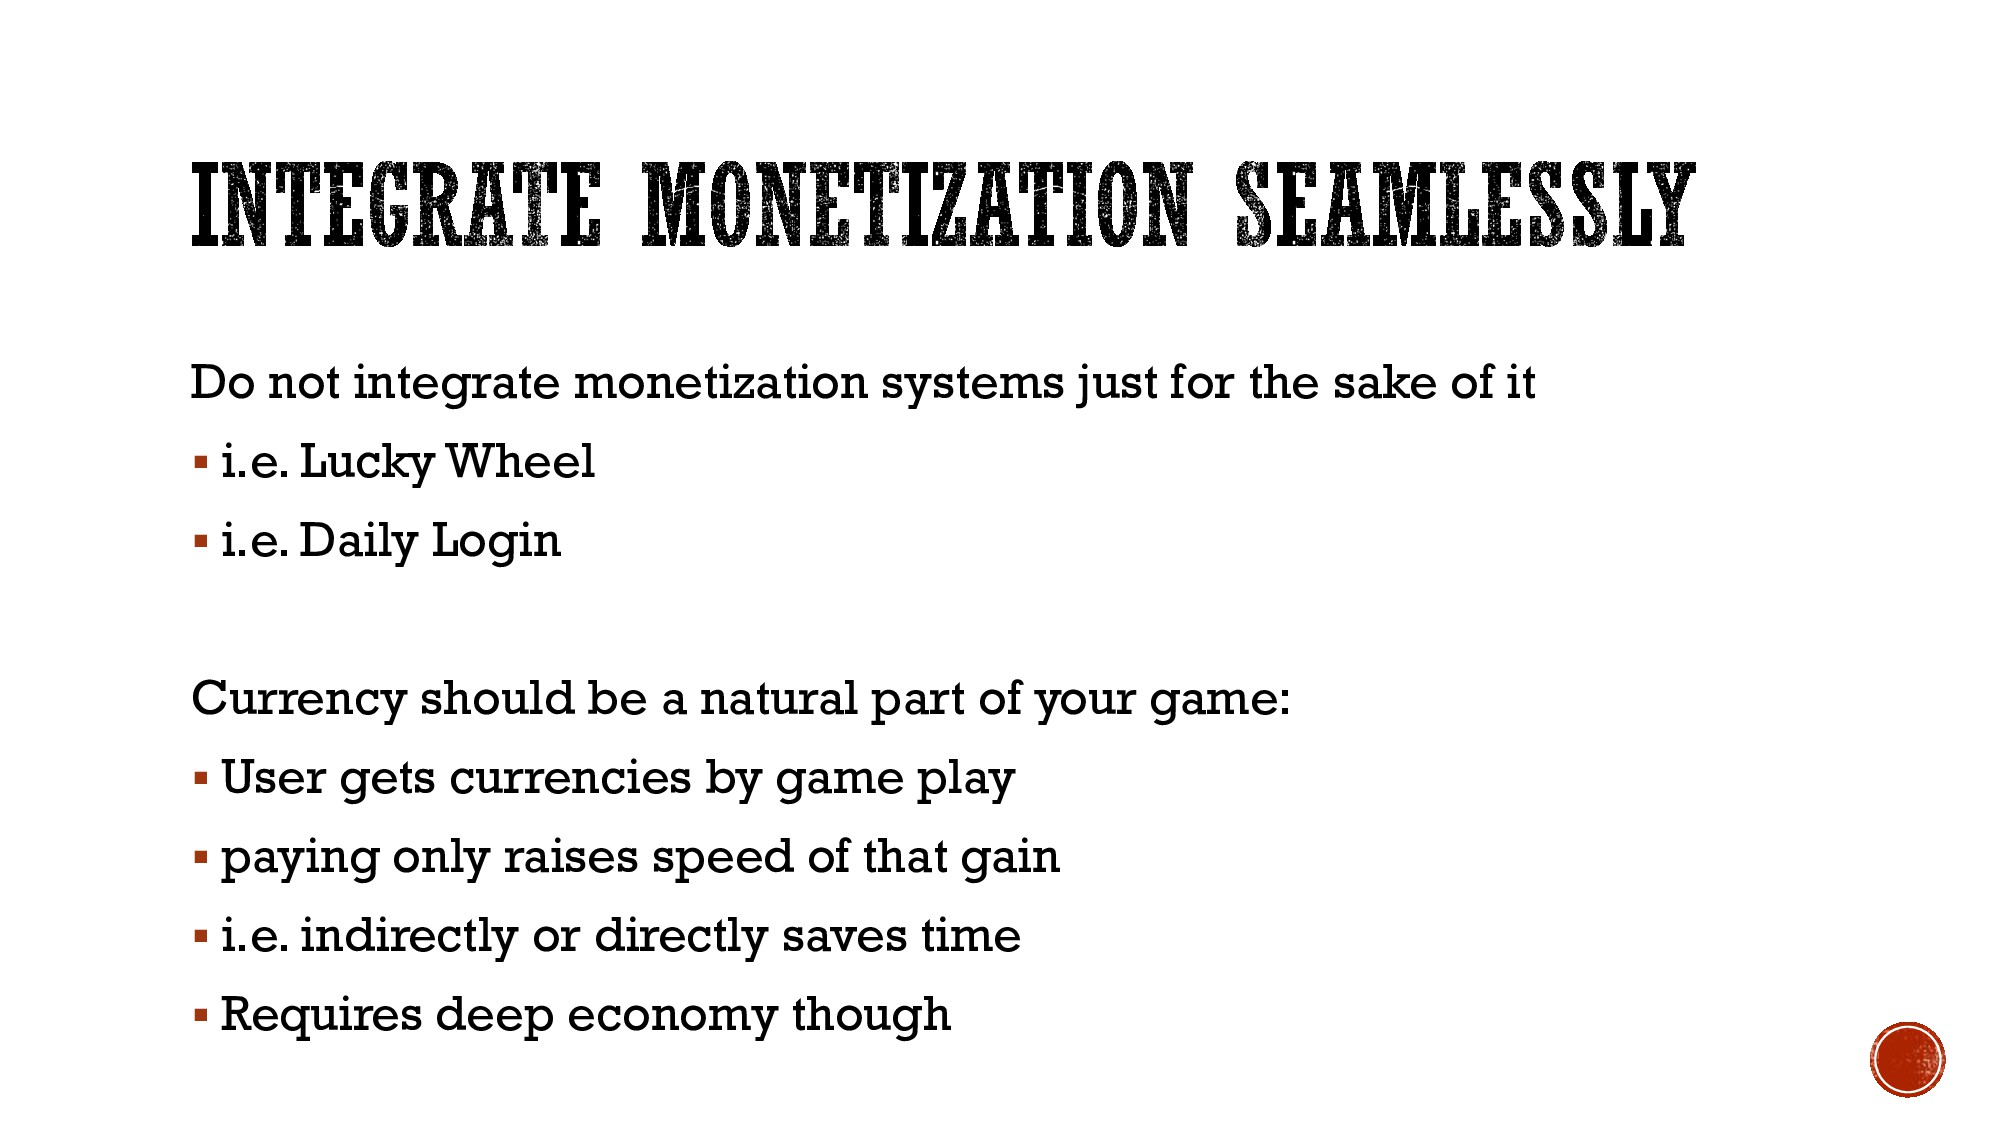 Do not integrate monetization systems just for ...